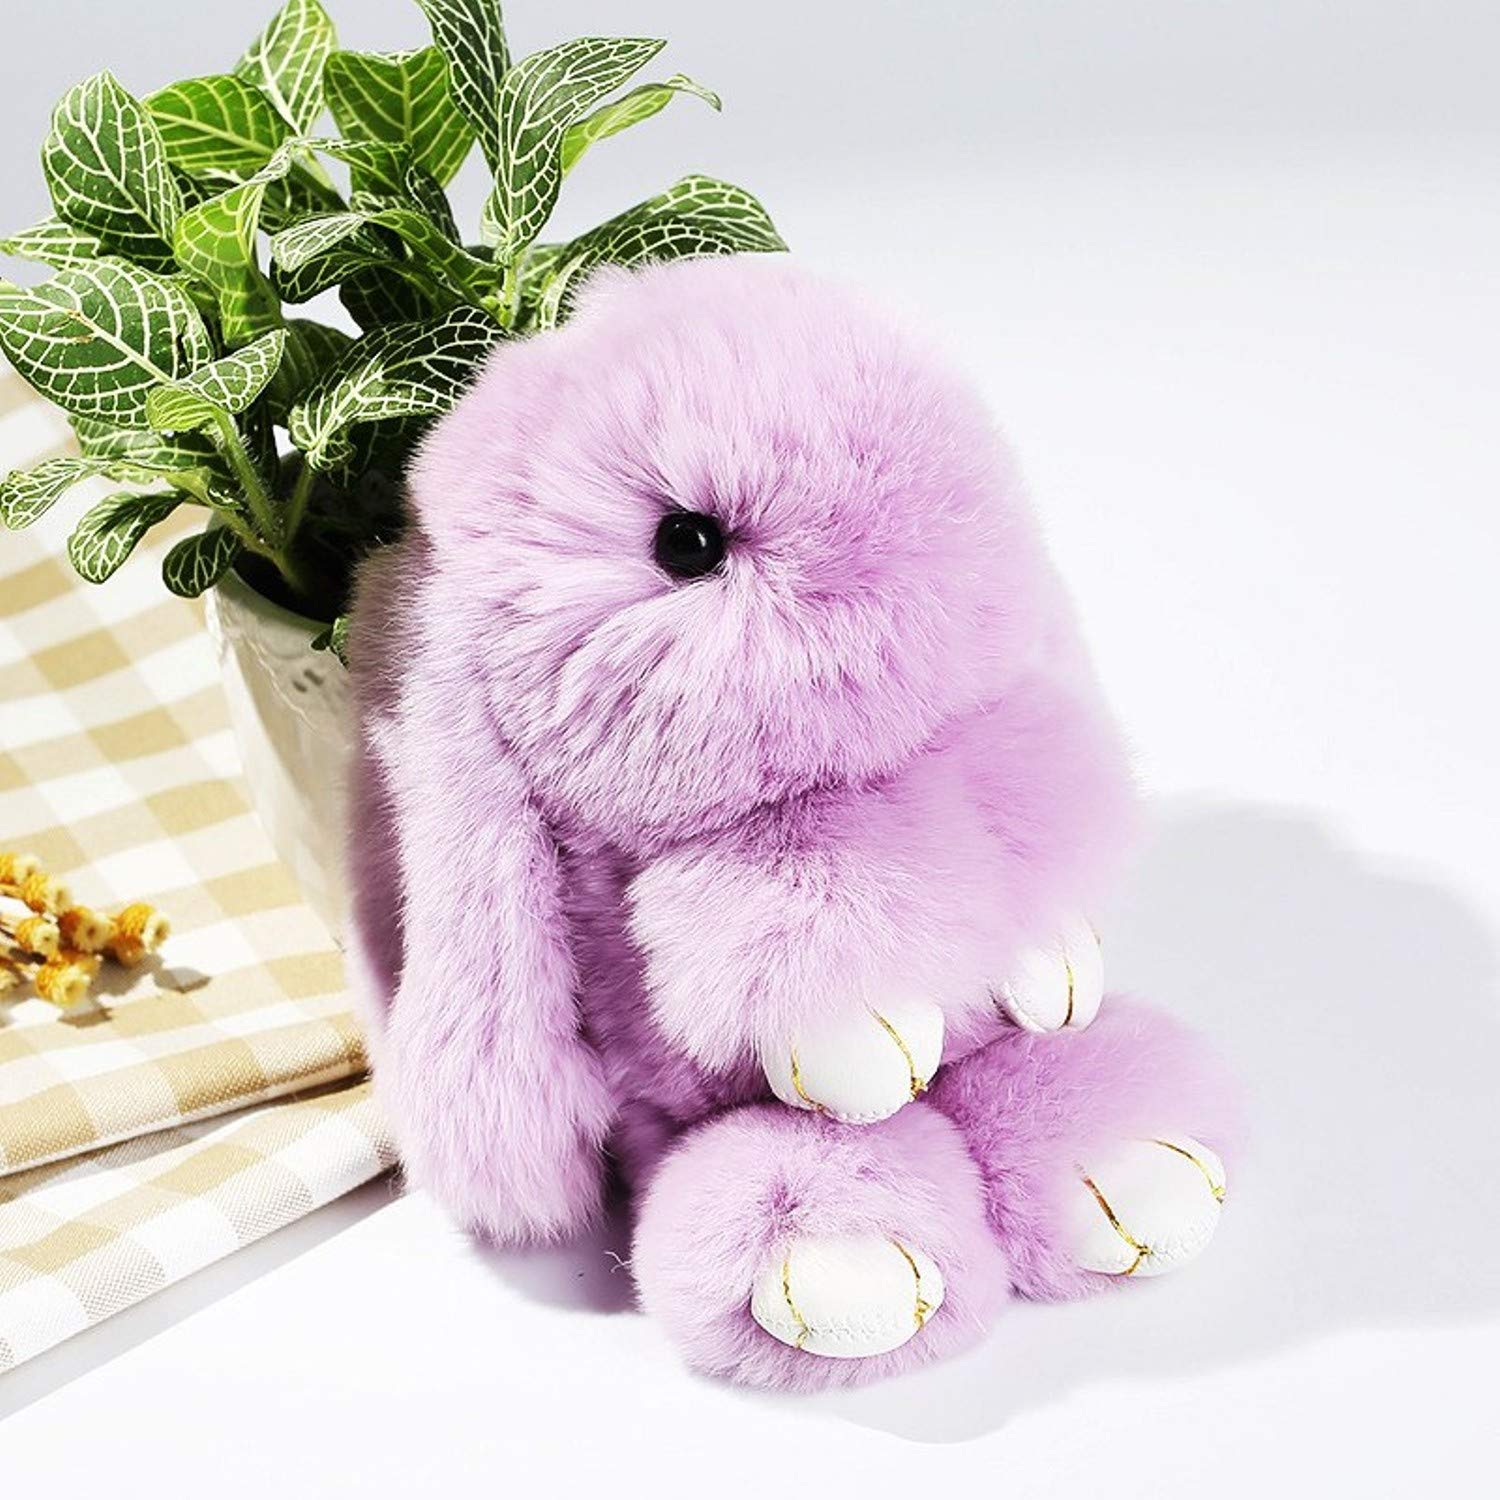 Amazon.com: JEWH Soft Rex Rabbit Furs Keychain / Pendant Bag/ Car Charm /Tag - Cute Mini Rabbit Toy Doll Real Fur Animal Keychains (Purple): Toys & Games